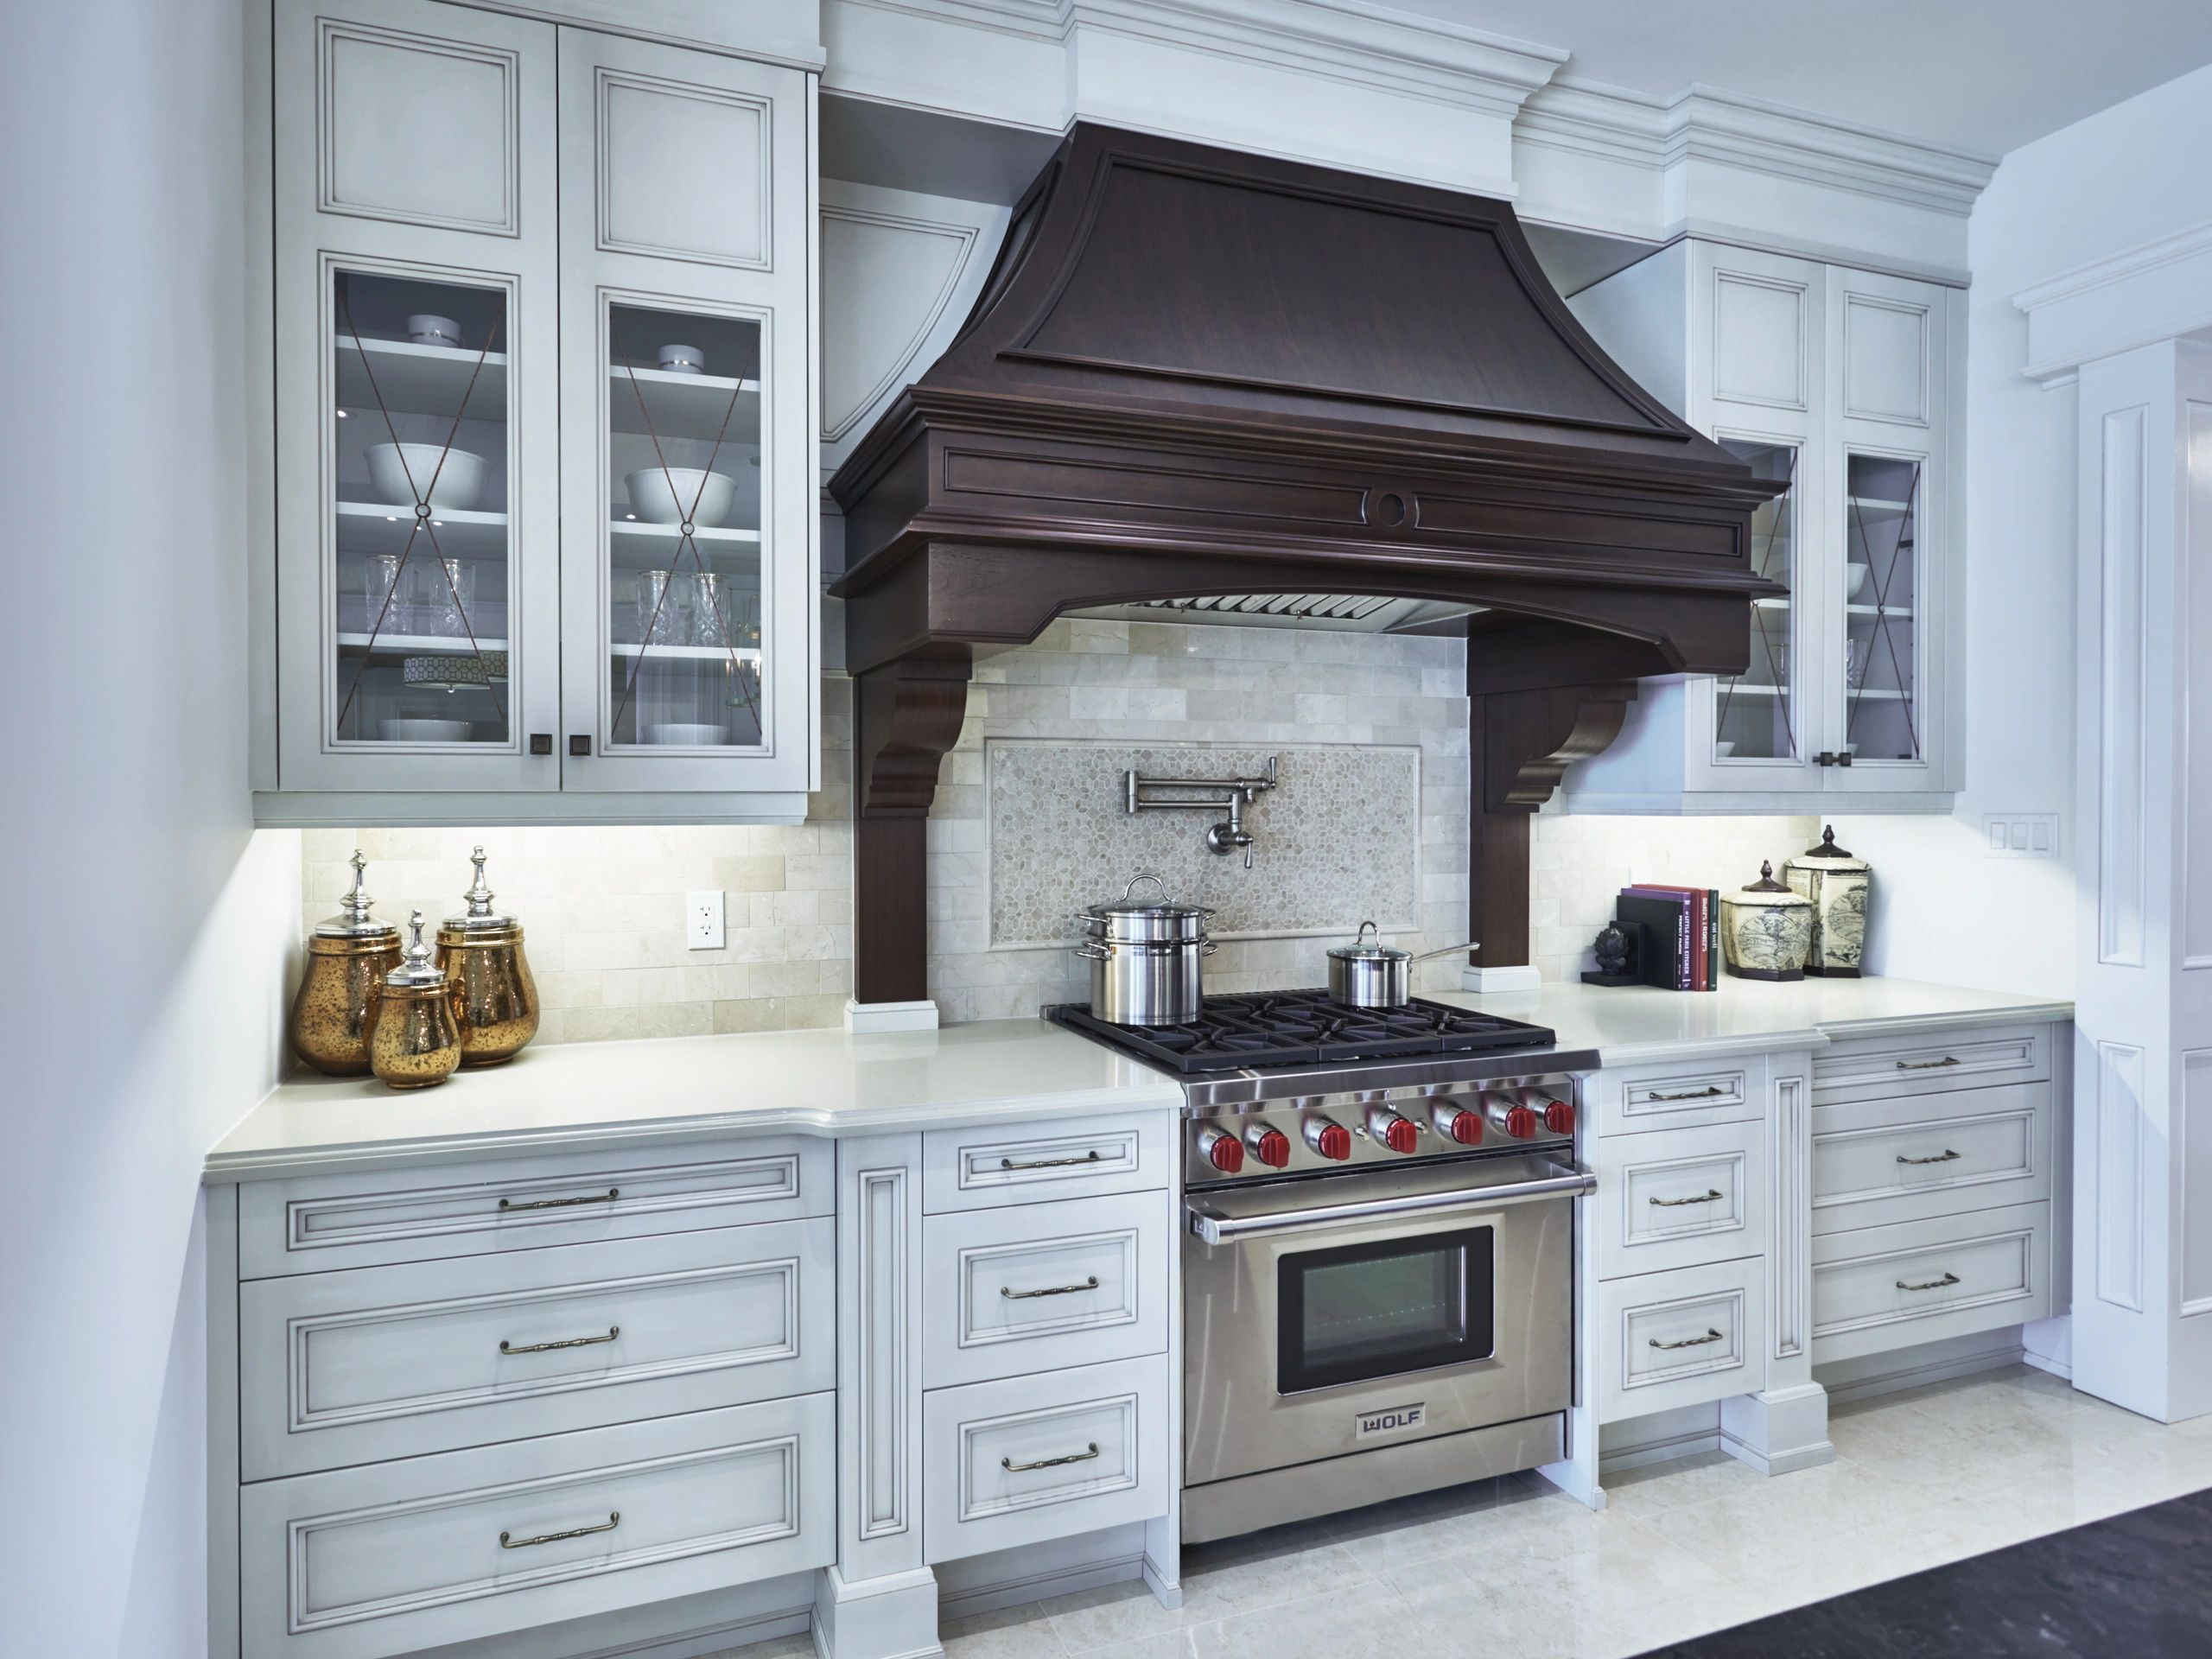 Kitchen Cabinets - Devine Designs Kitchens & More